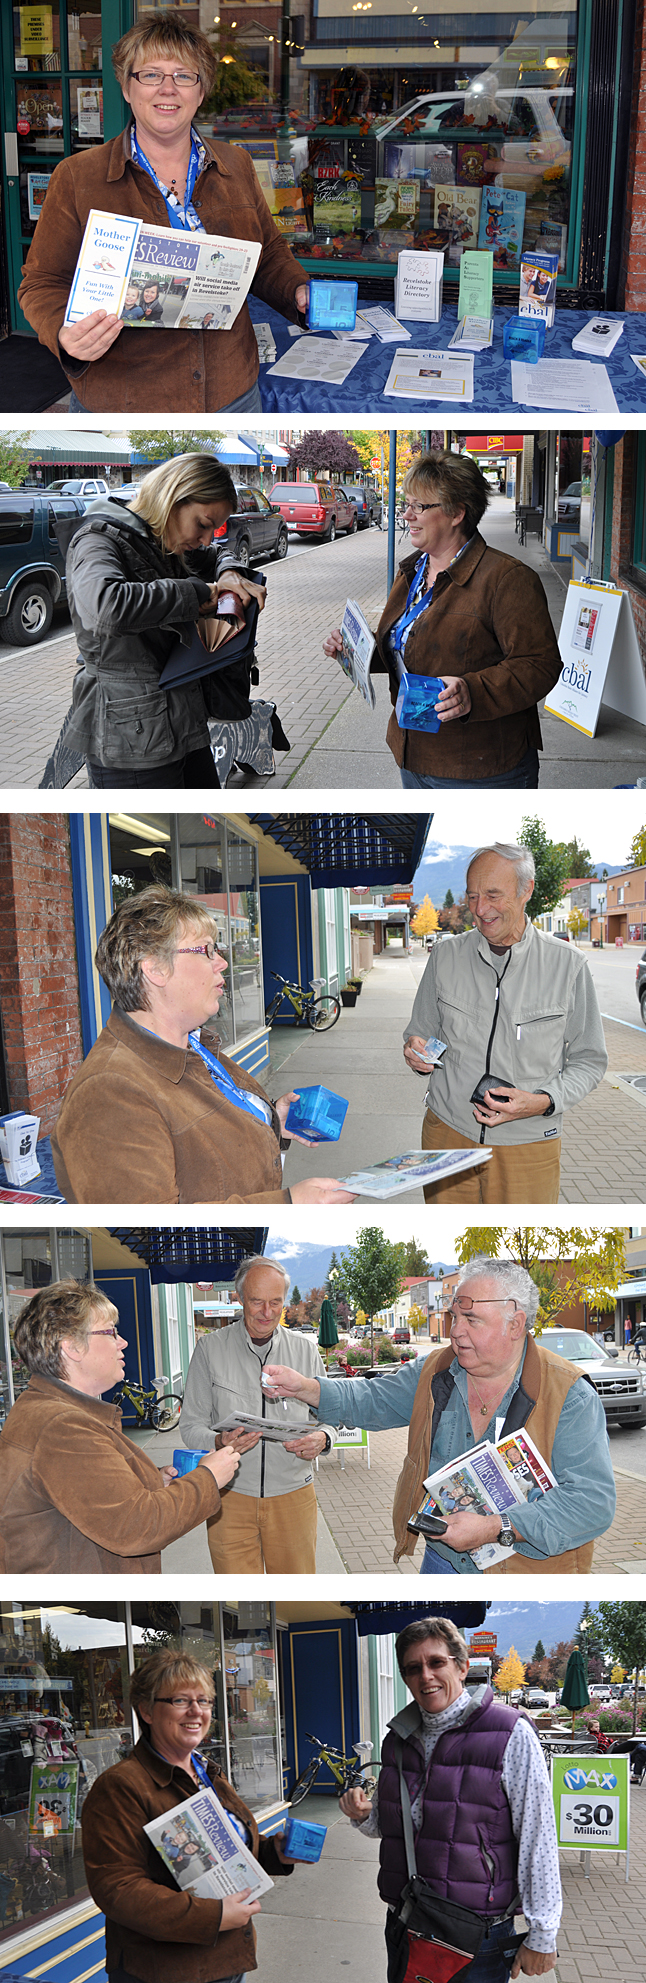 Talk about keeping busy! Linda Chell spent much of Wednesday afternoon handing out free copies of The Times Review in exchange for a donation to benefit the Columbia Basin Alliance for Literacy programs in Revelstoke. In the course of her shift she met all kinds of generous people including Heike Prokoph, Jeff Nicholson, Art Bellerose and Rosemary Granstrom. Great work Linda! David F. Rooney photos